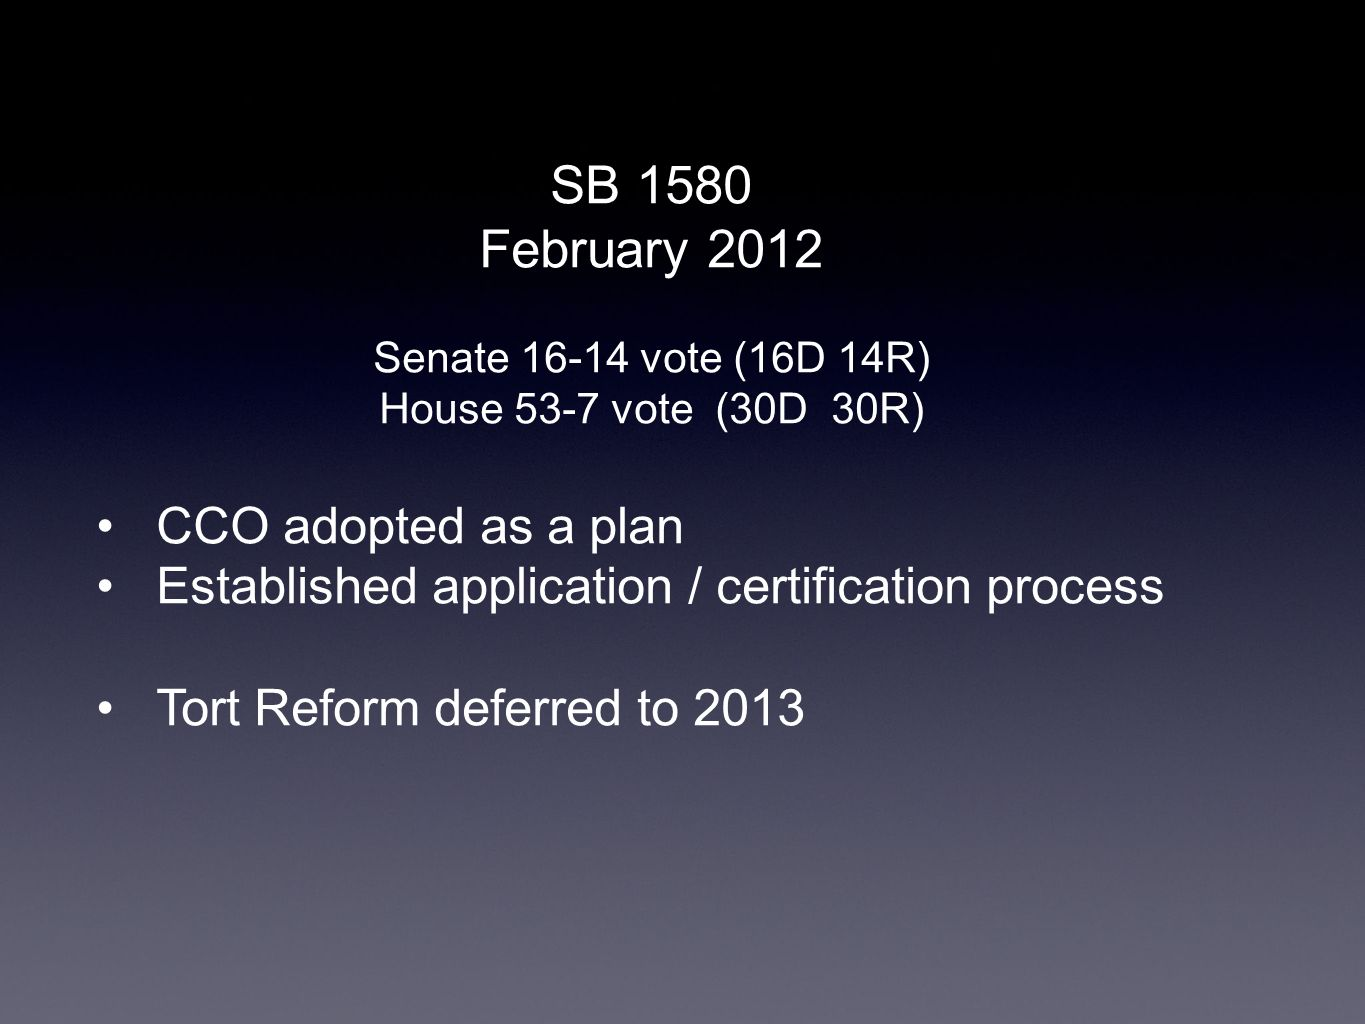 SB 1580 February 2012 Senate 16-14 vote (16D 14R) House 53-7 vote (30D 30R) CCO adopted as a plan Established application / certification process Tort